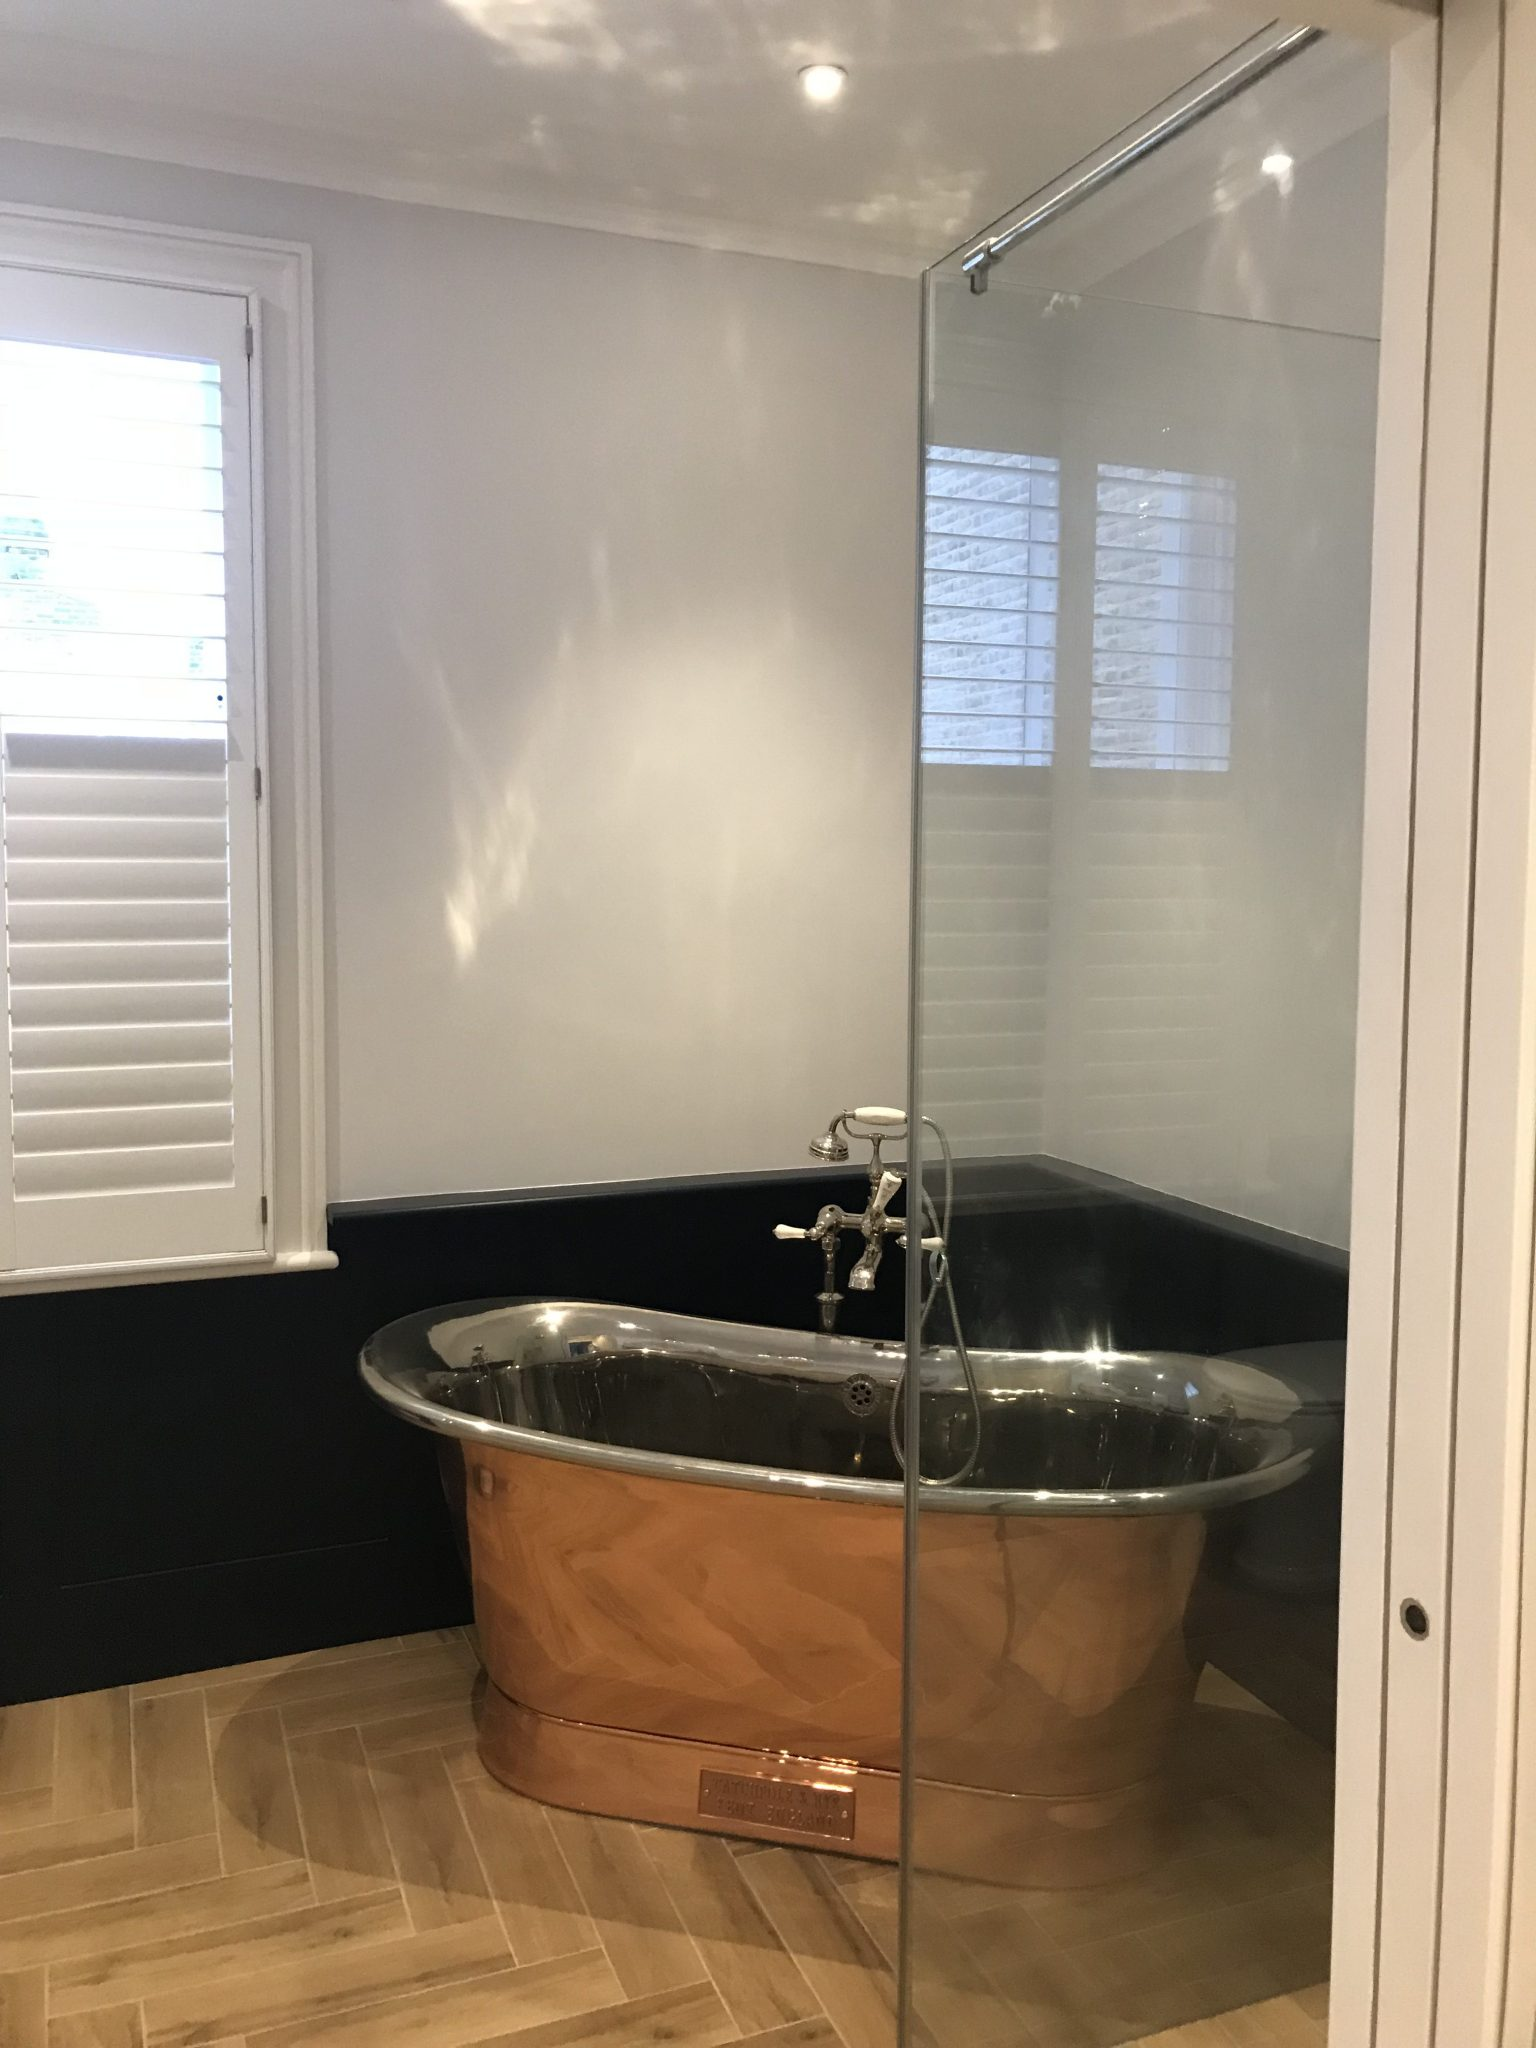 Bathroom remodel: after